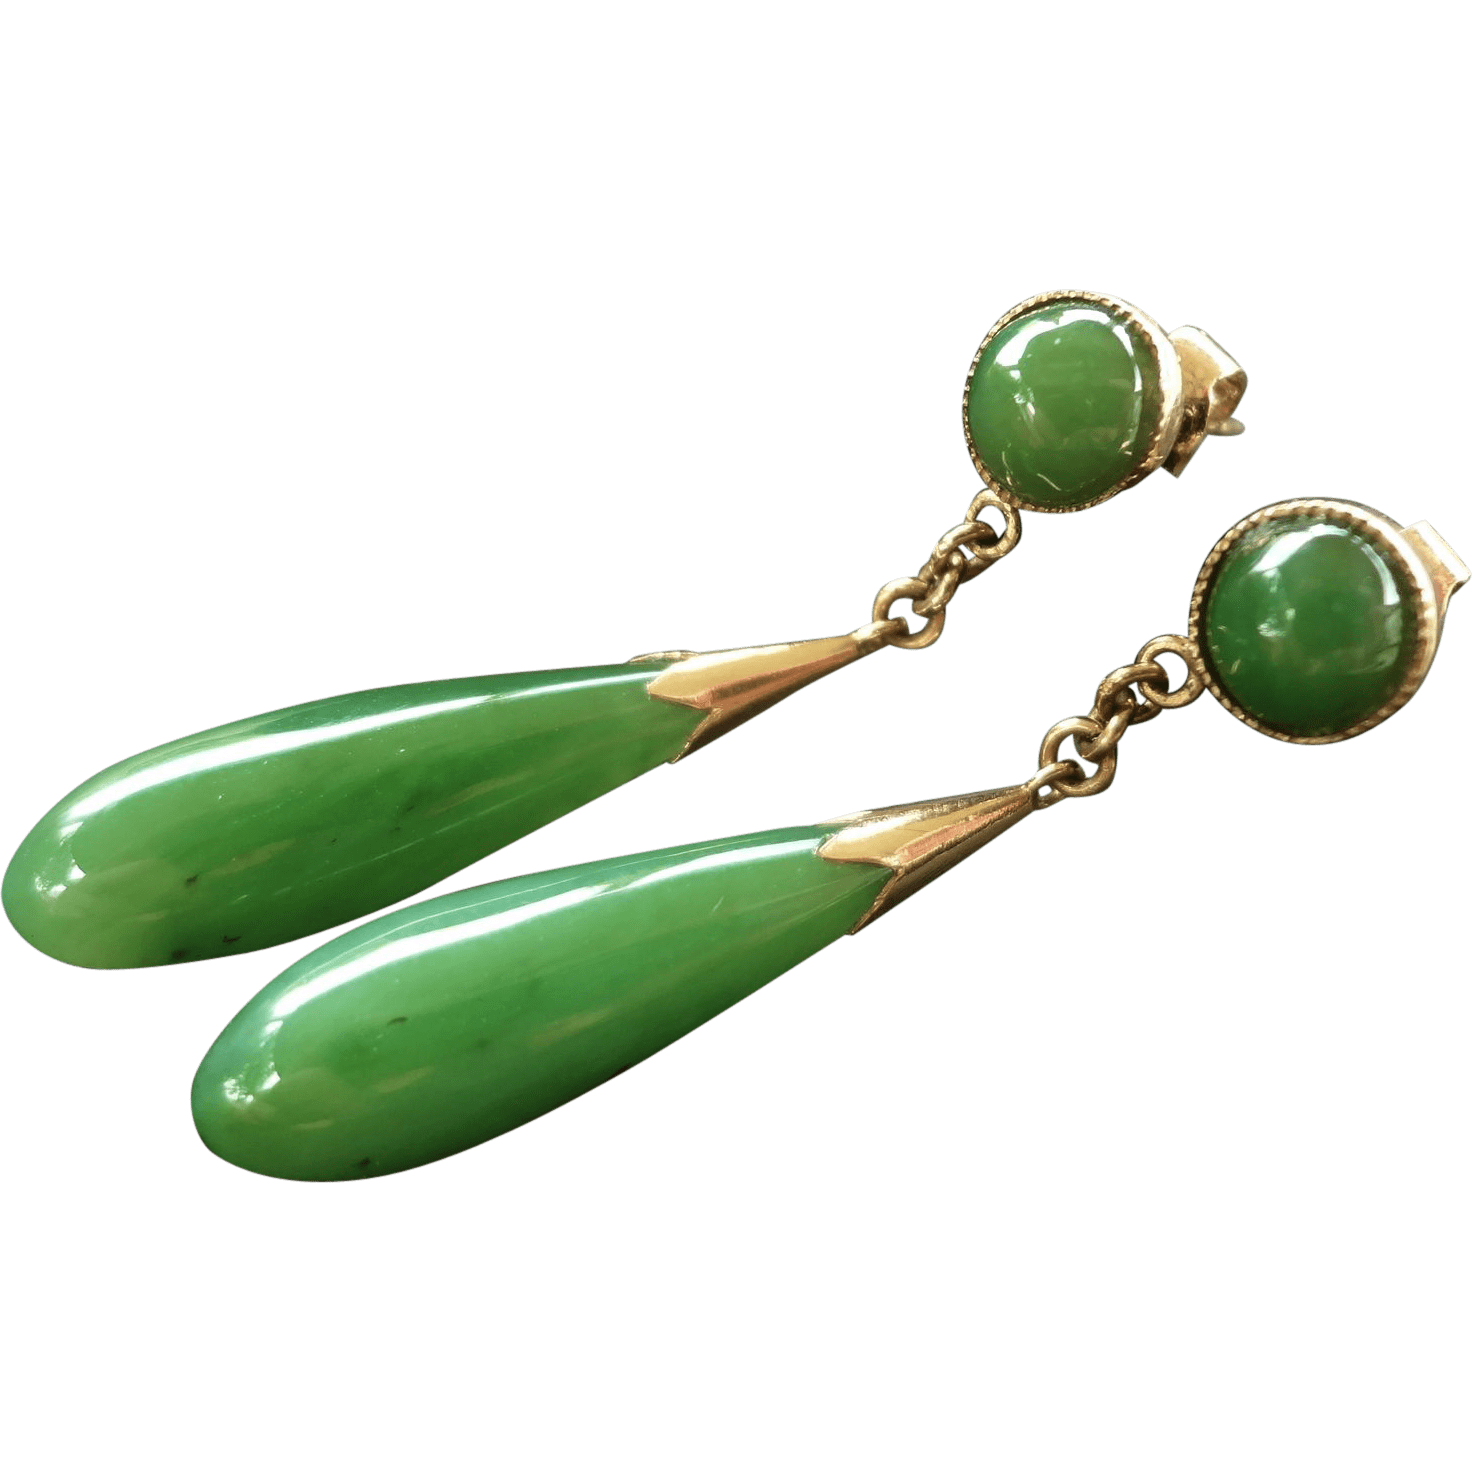 Vintage Chinese 14k Green Jade Earrings from jools4u on